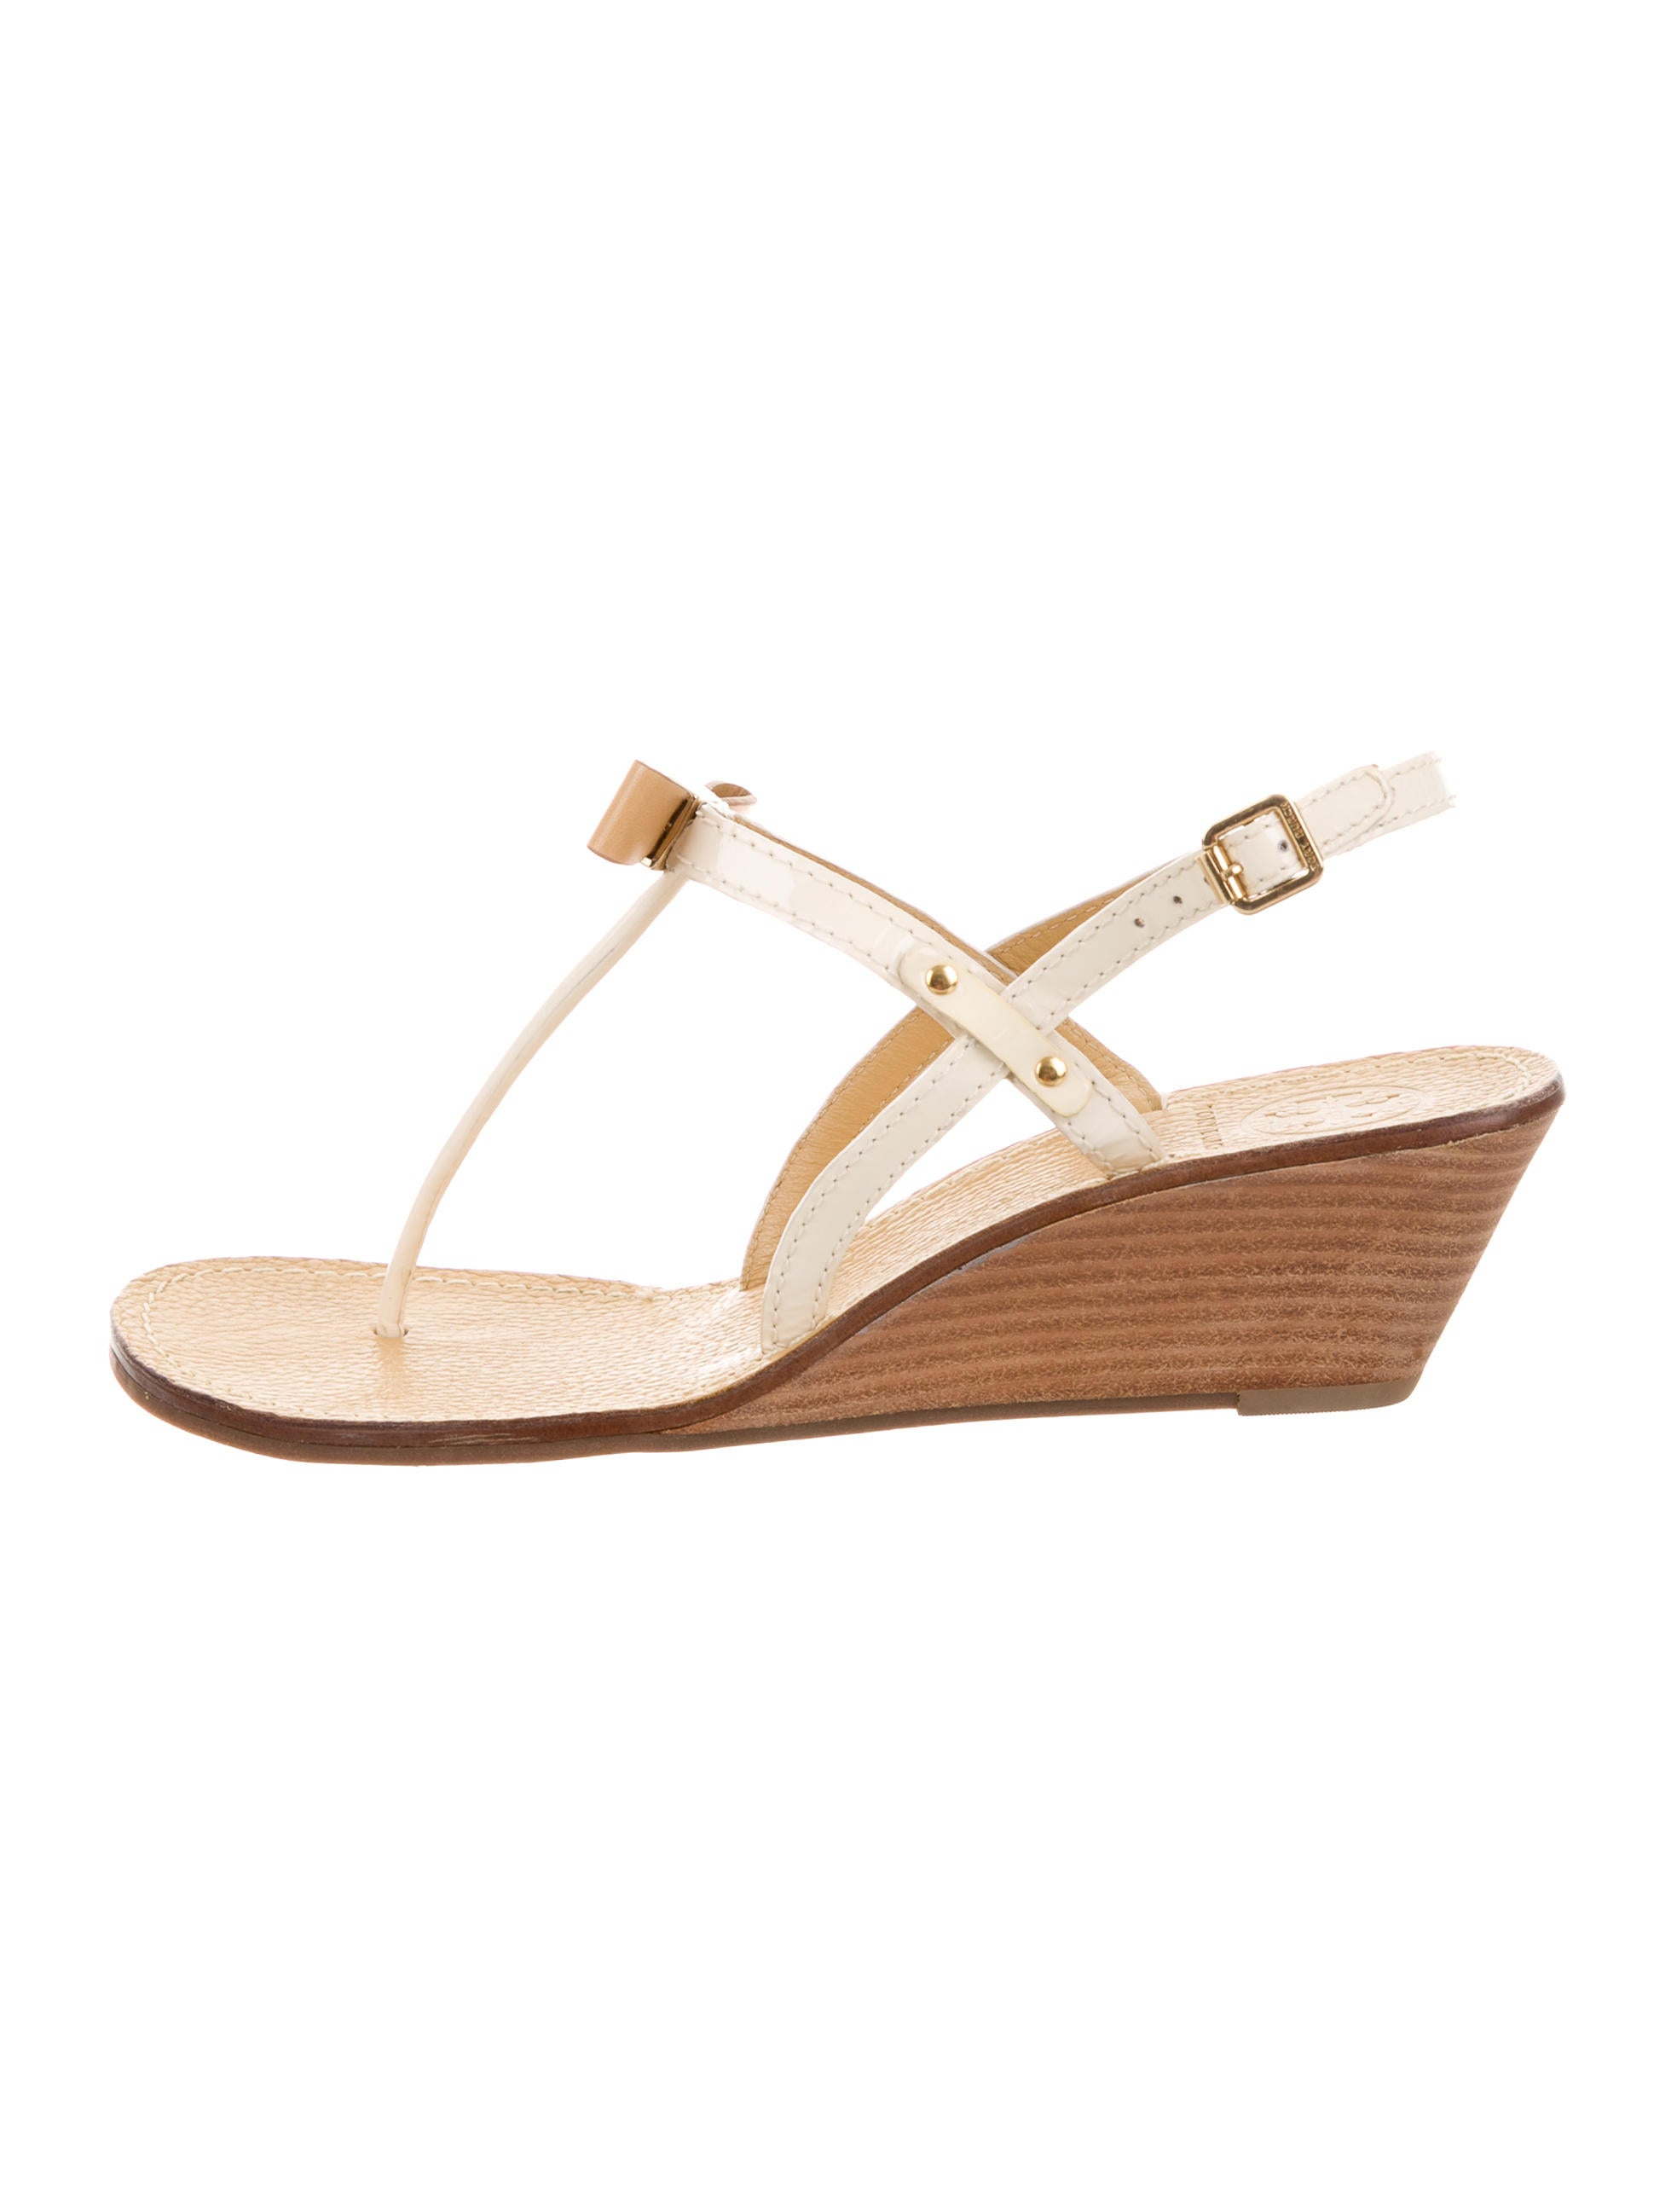 ad2493791d6f Tory Burch Kailey Wedge Sandals - Shoes - WTO99928